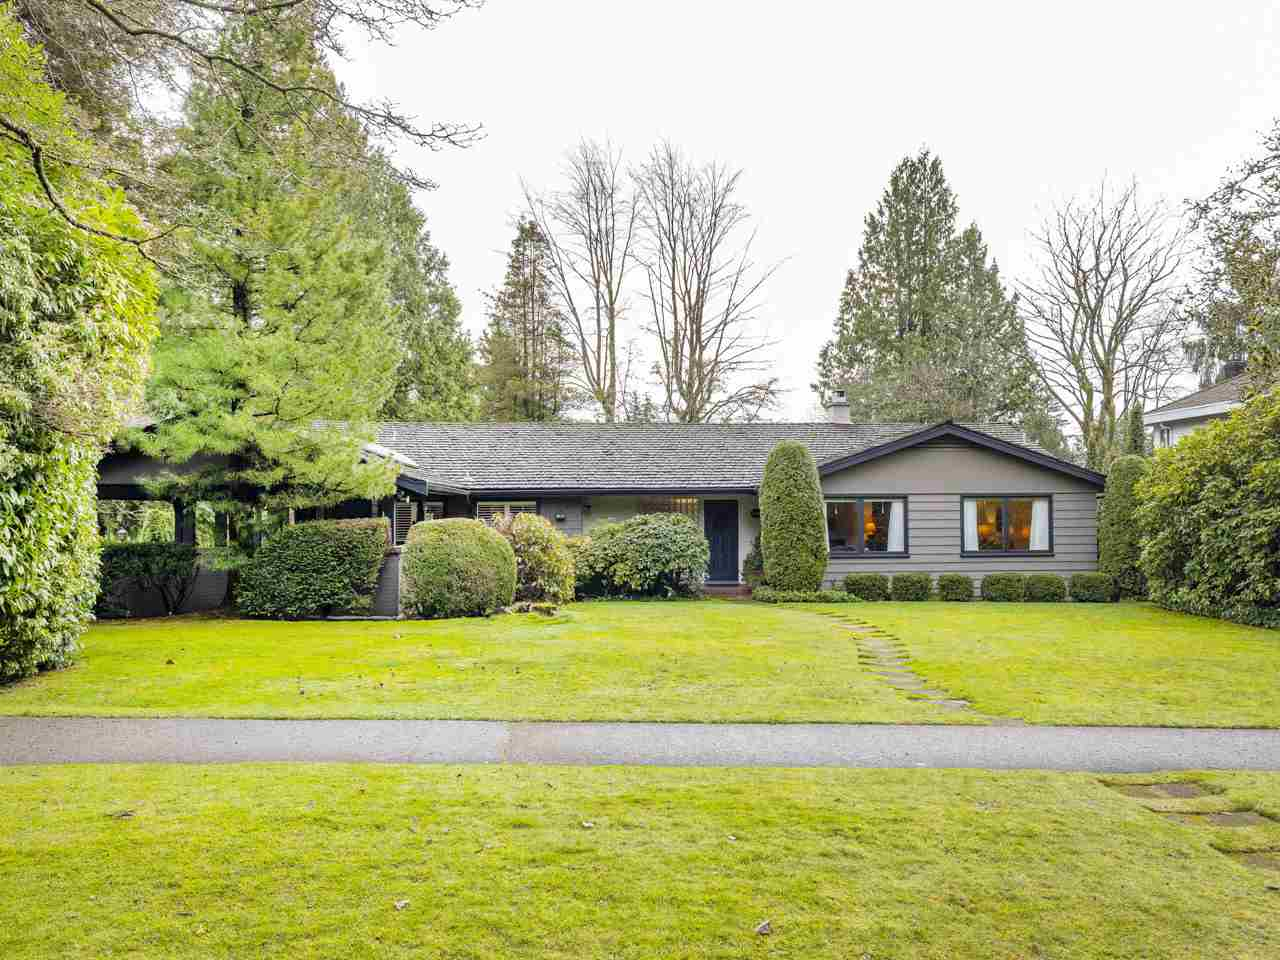 1308 W 54TH AVENUE - South Granville House/Single Family for sale, 4 Bedrooms (R2528346)